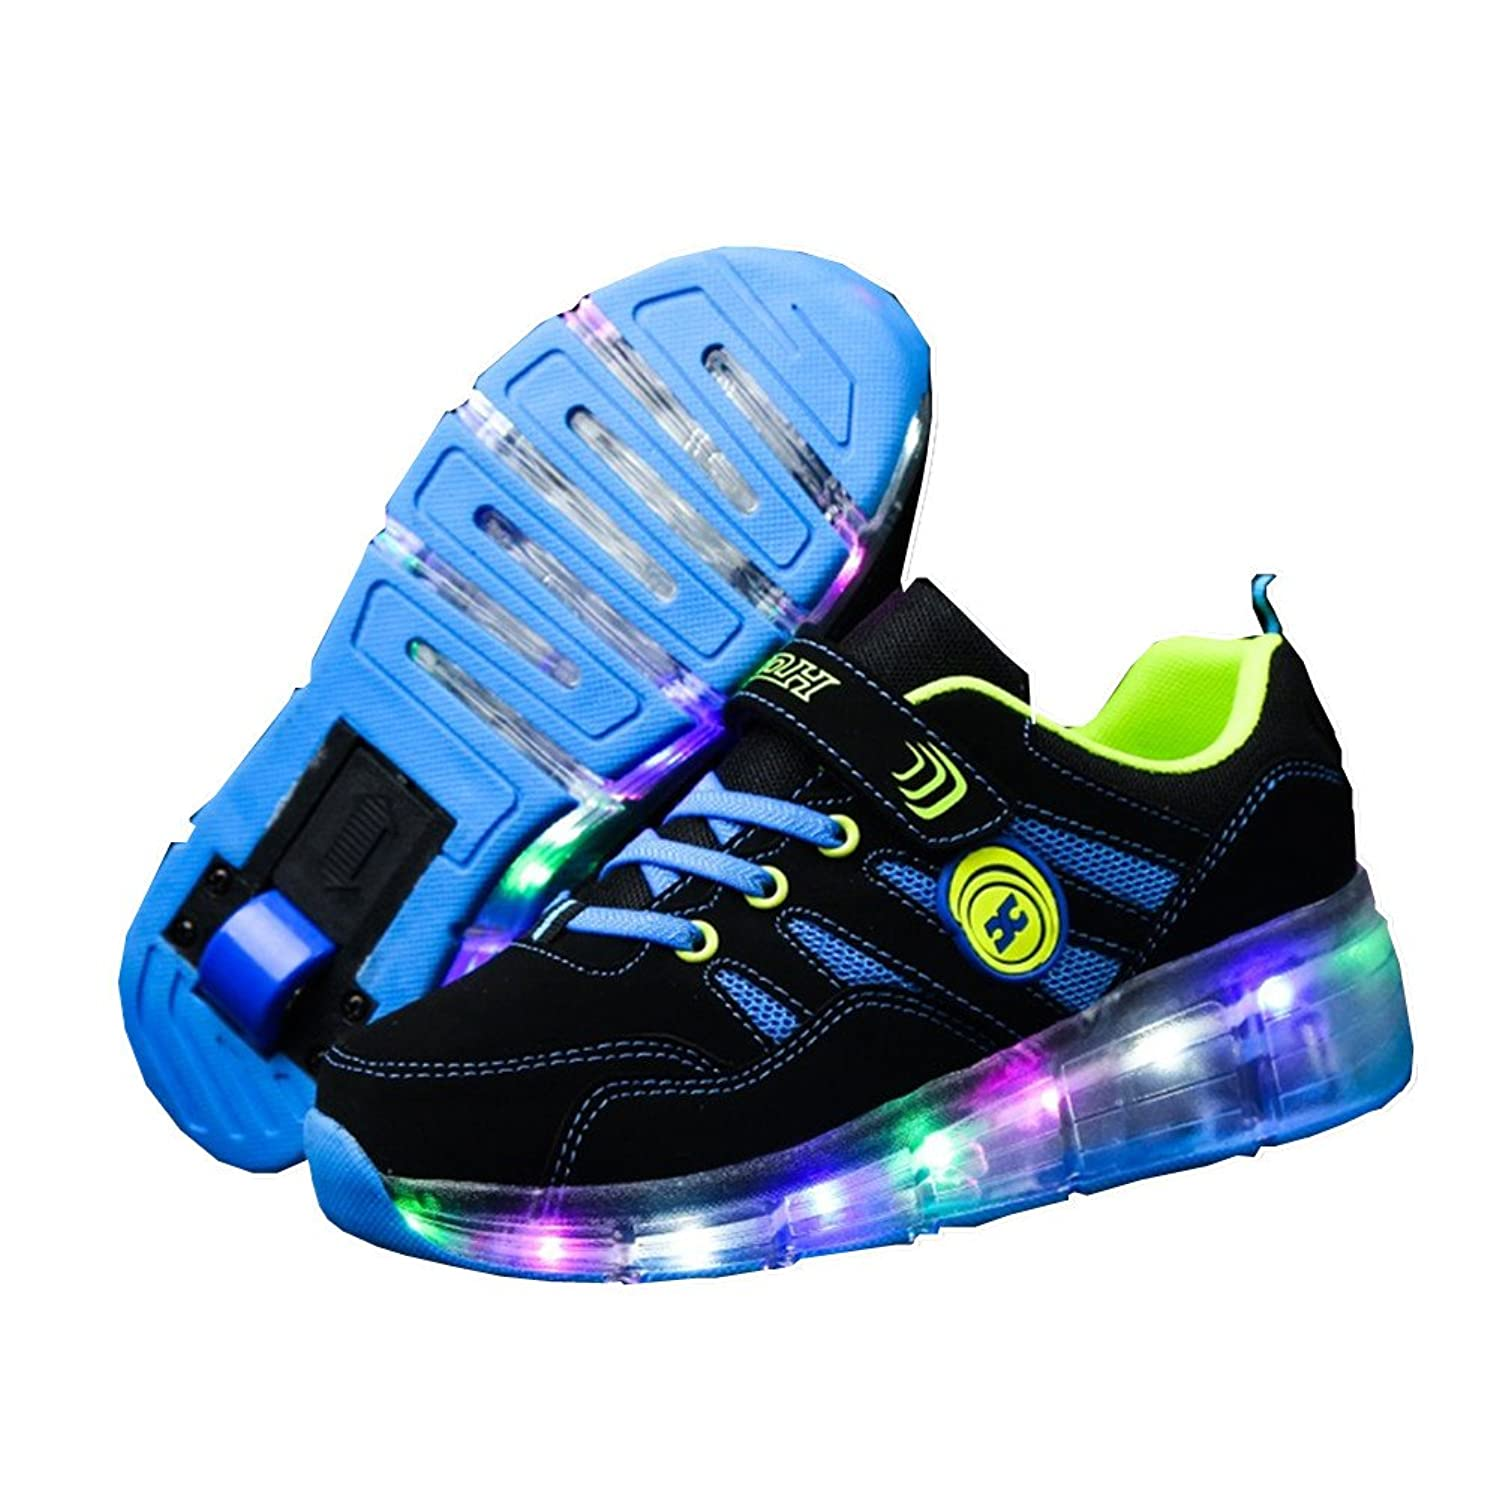 Pop out roller skate shoes - Amazon Com Cps Kids Girls Boys Light Up Wheels Roller Shoes Skates Sneakers Sneakers